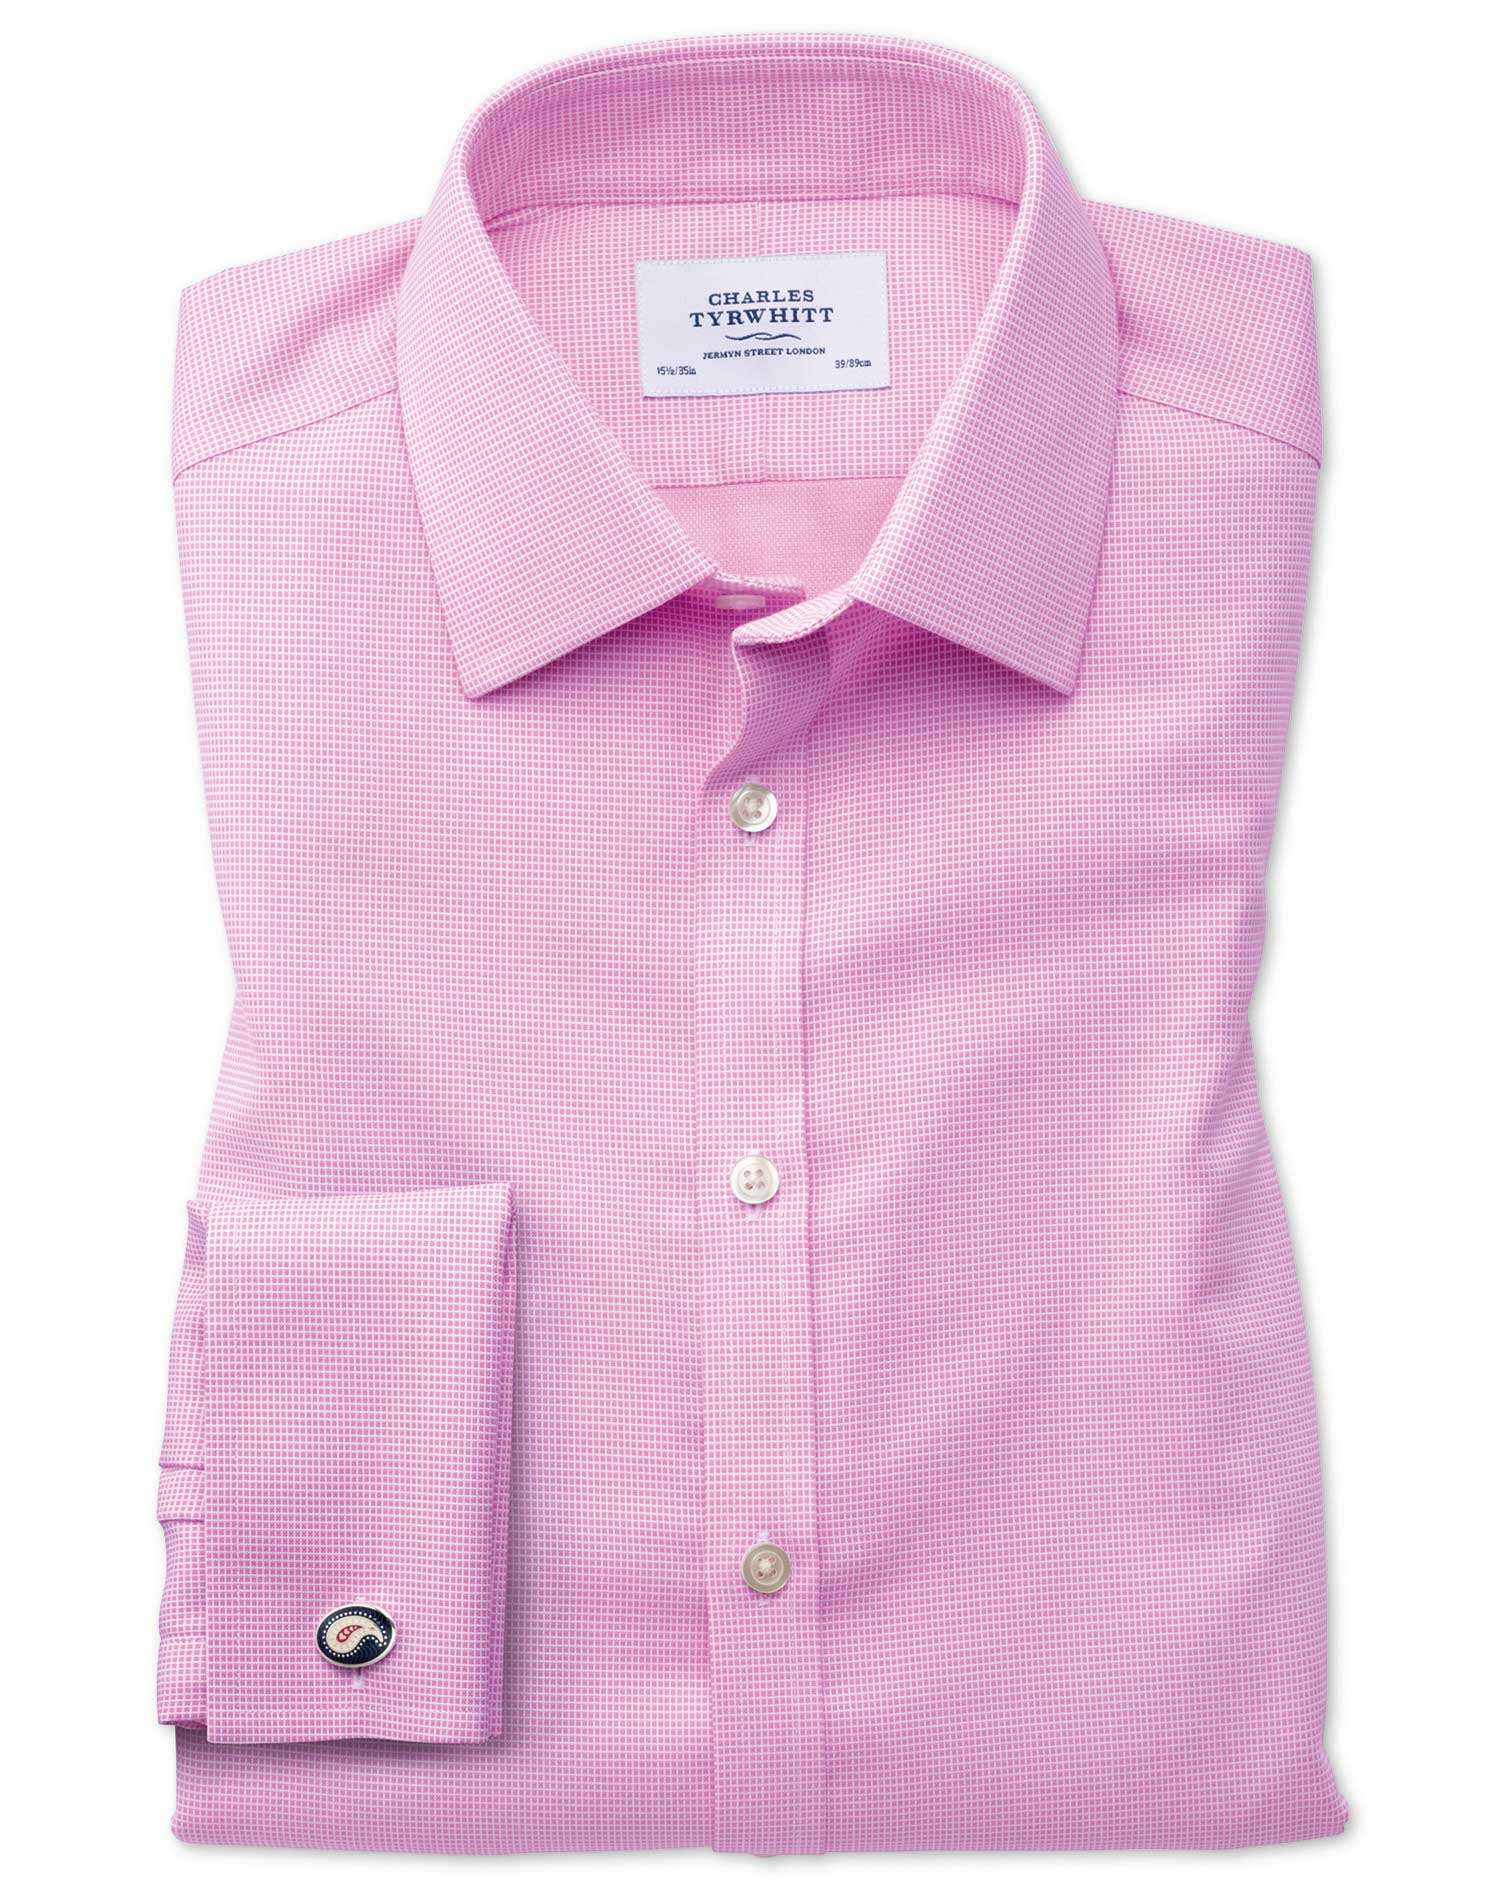 Extra Slim Fit Non-Iron Square Weave Pink Cotton Formal Shirt Double Cuff Size 15/35 by Charles Tyrw